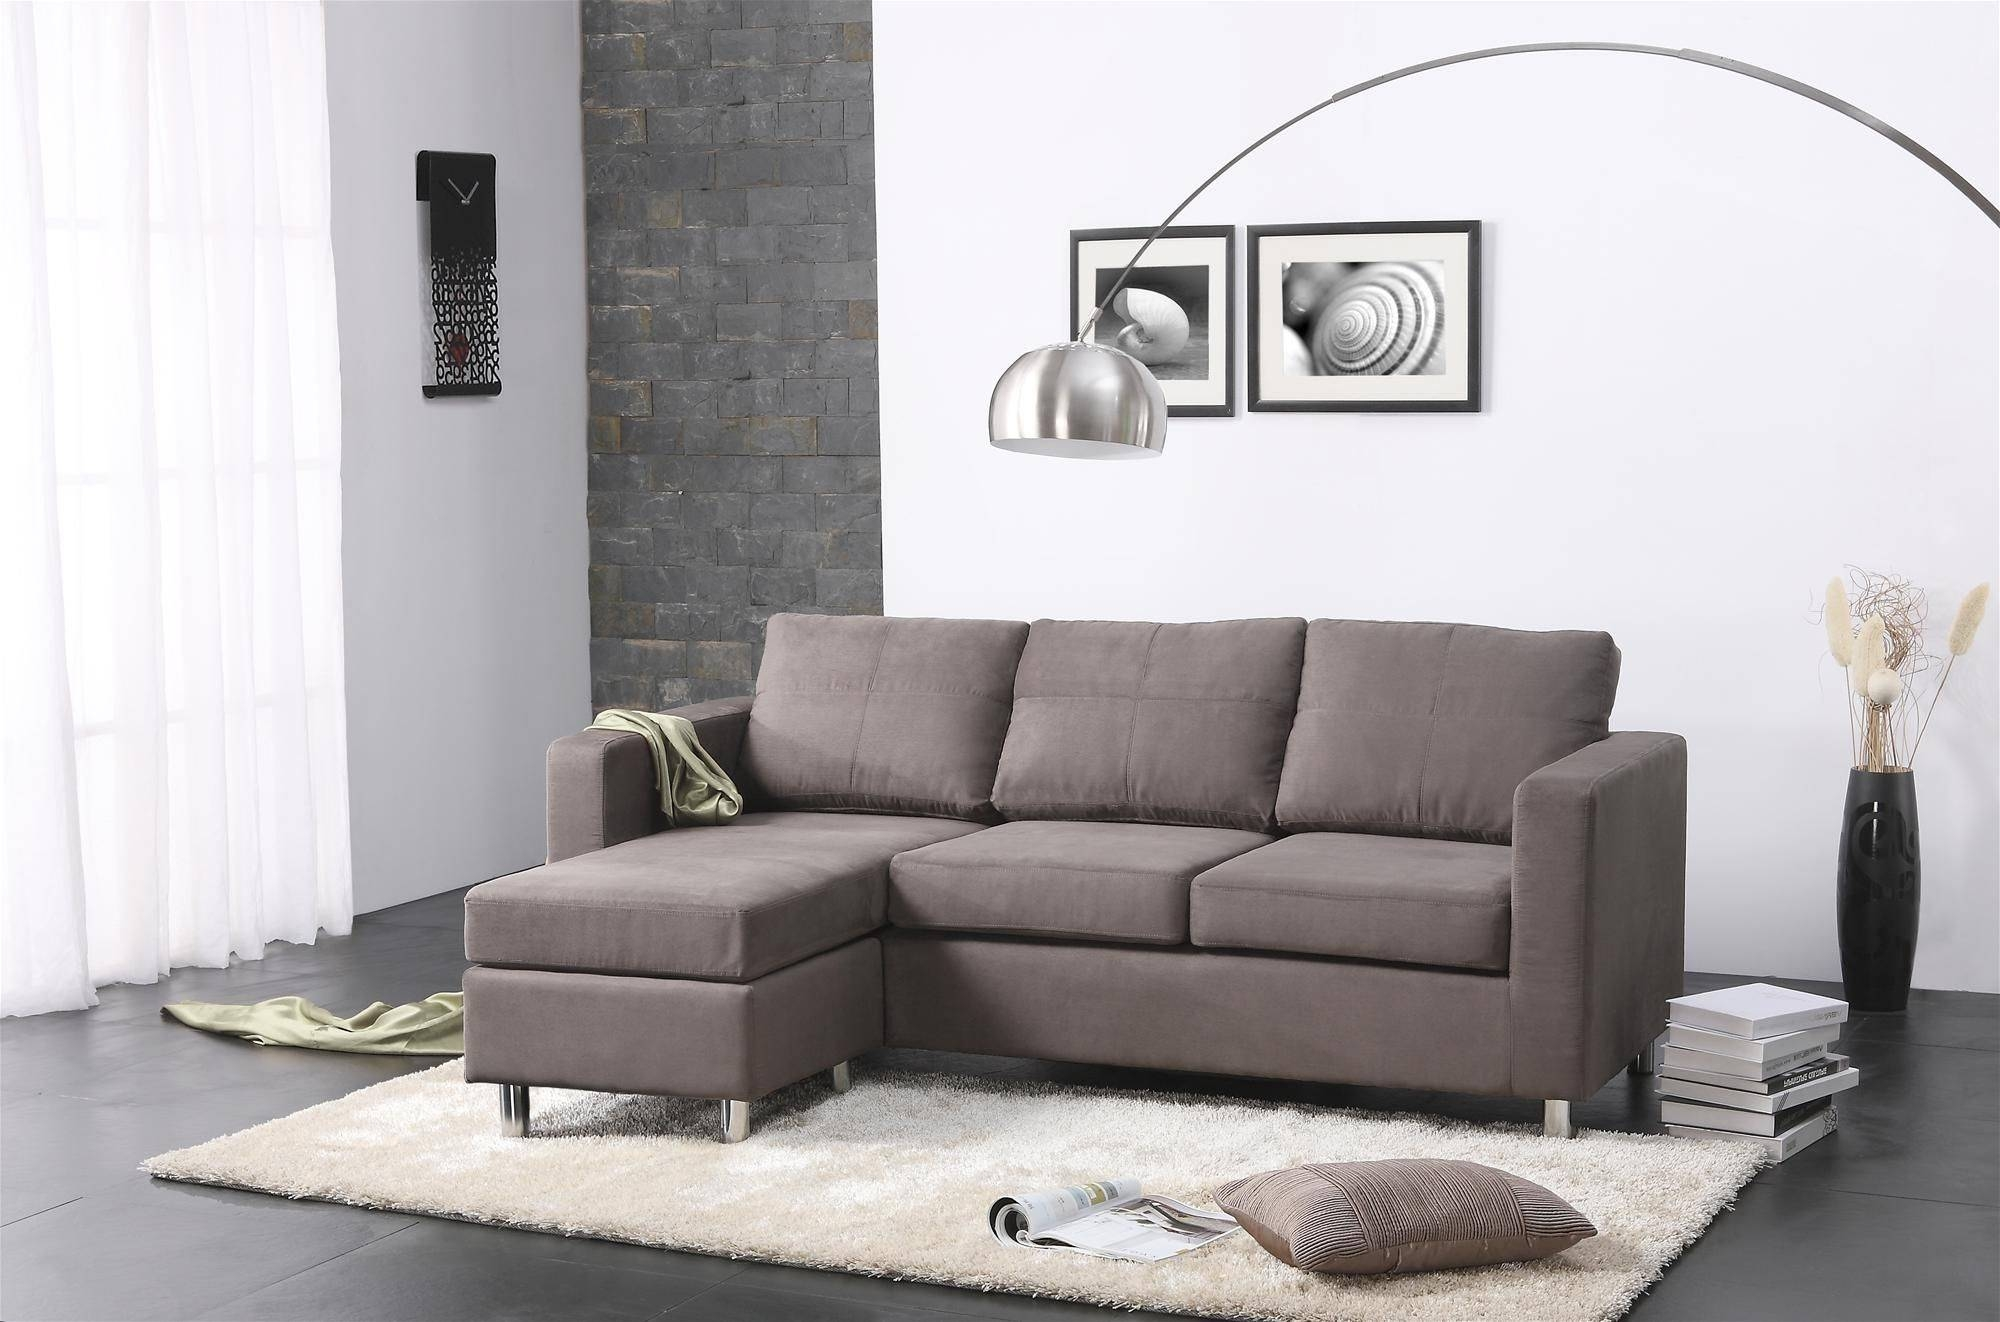 Furniture: Awesome Living Room Design With Contemporary Sectional throughout Modern Sectional Sofas for Small Spaces (Image 8 of 25)